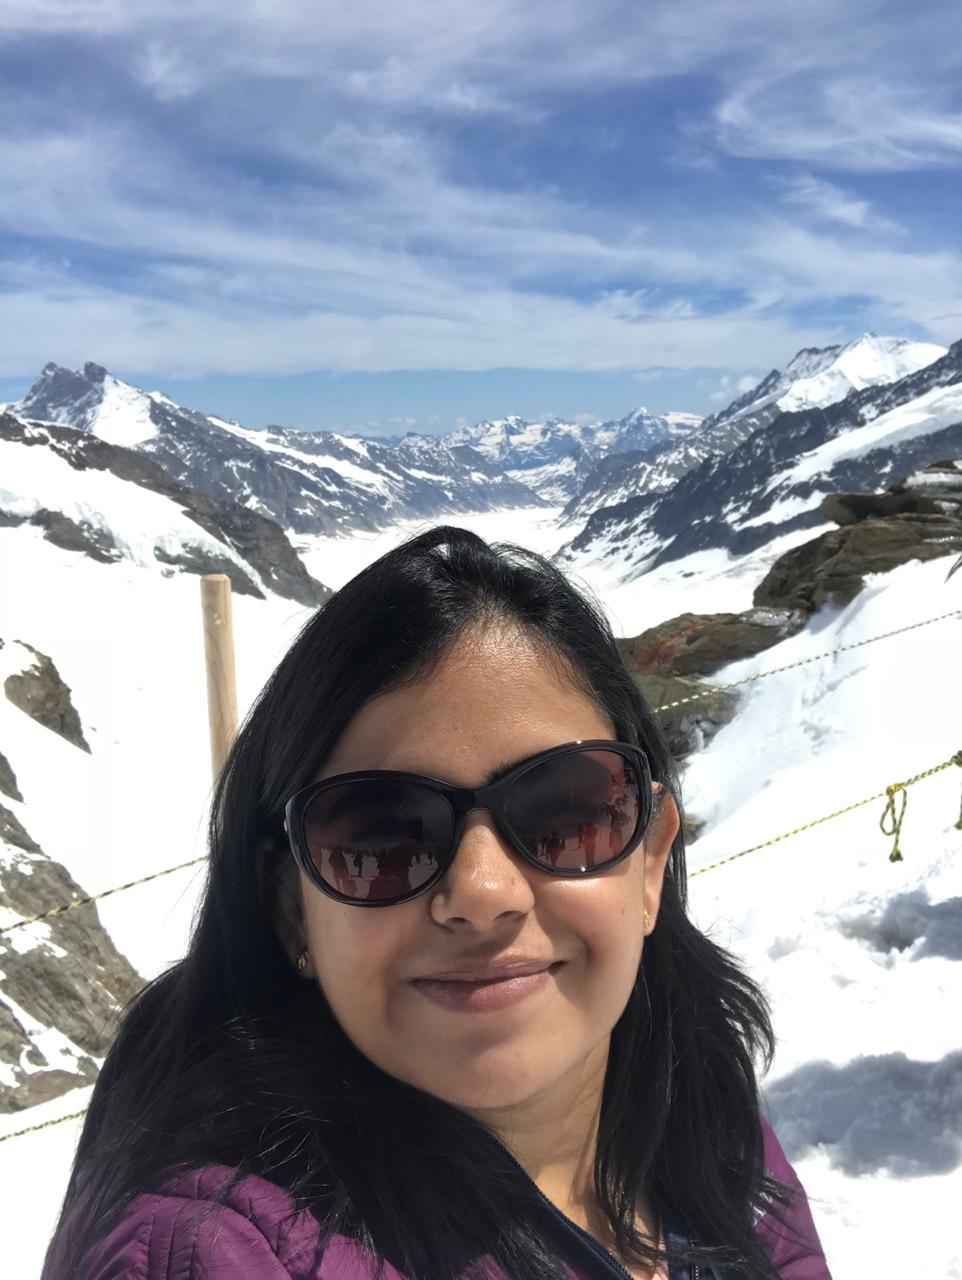 Switzerland ???????? Jungfrau Region: The Top of Europe..!!  #SelfieWithAView #TripotoCommunity